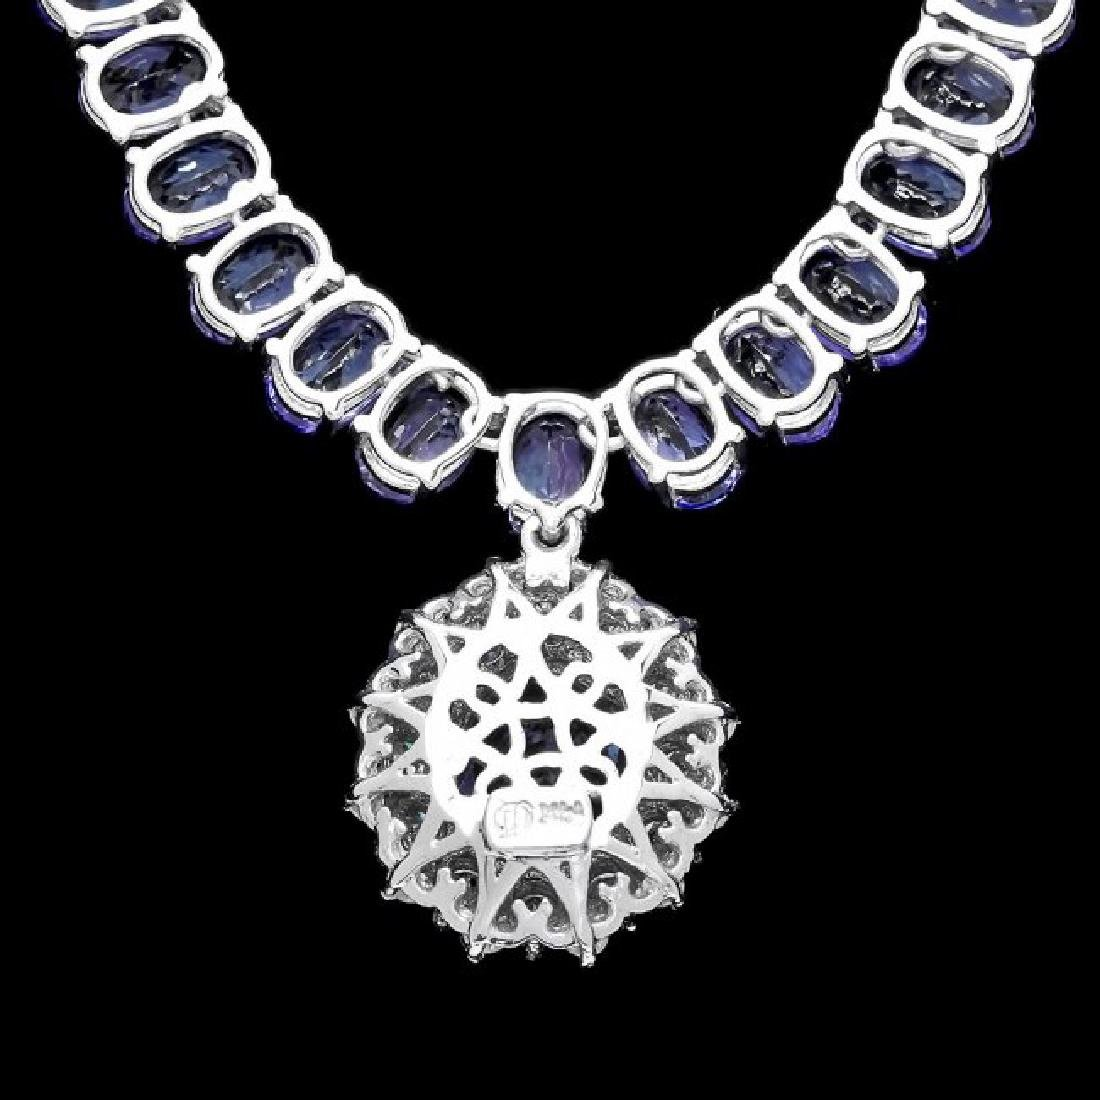 14k W Gold 45ct Tanzanite 1.35ct Diamond Necklace - 5